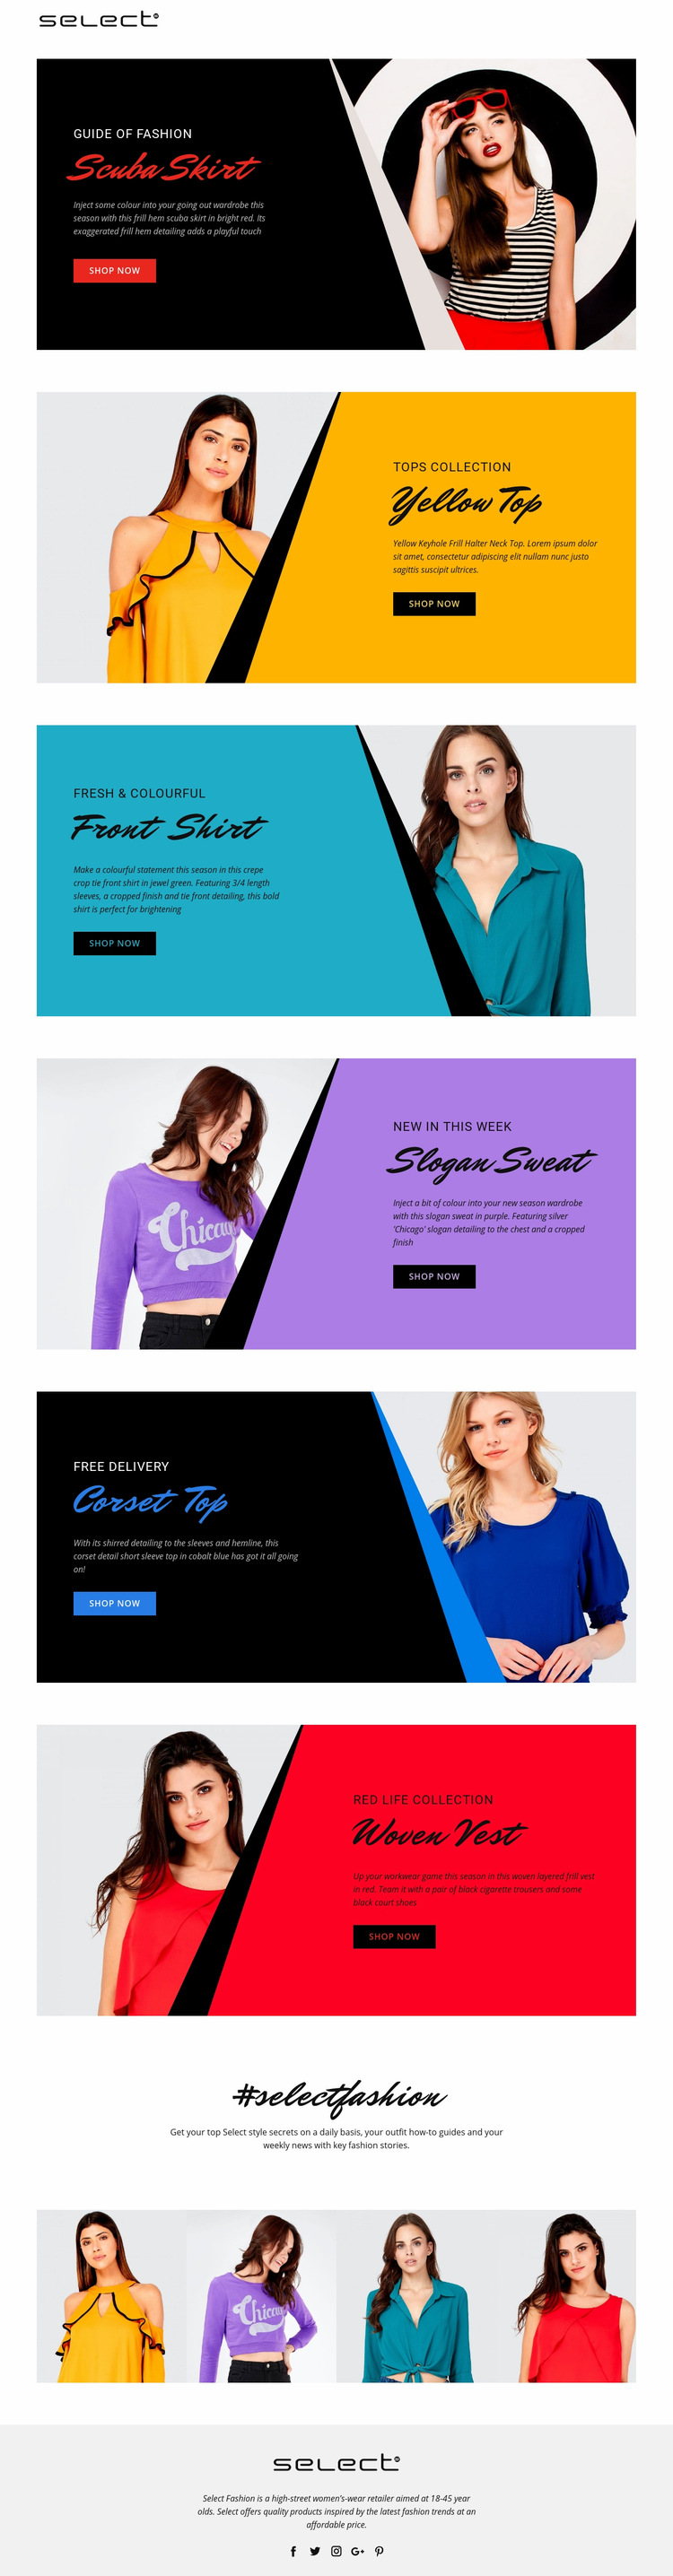 Learn about dress codes Web Page Design